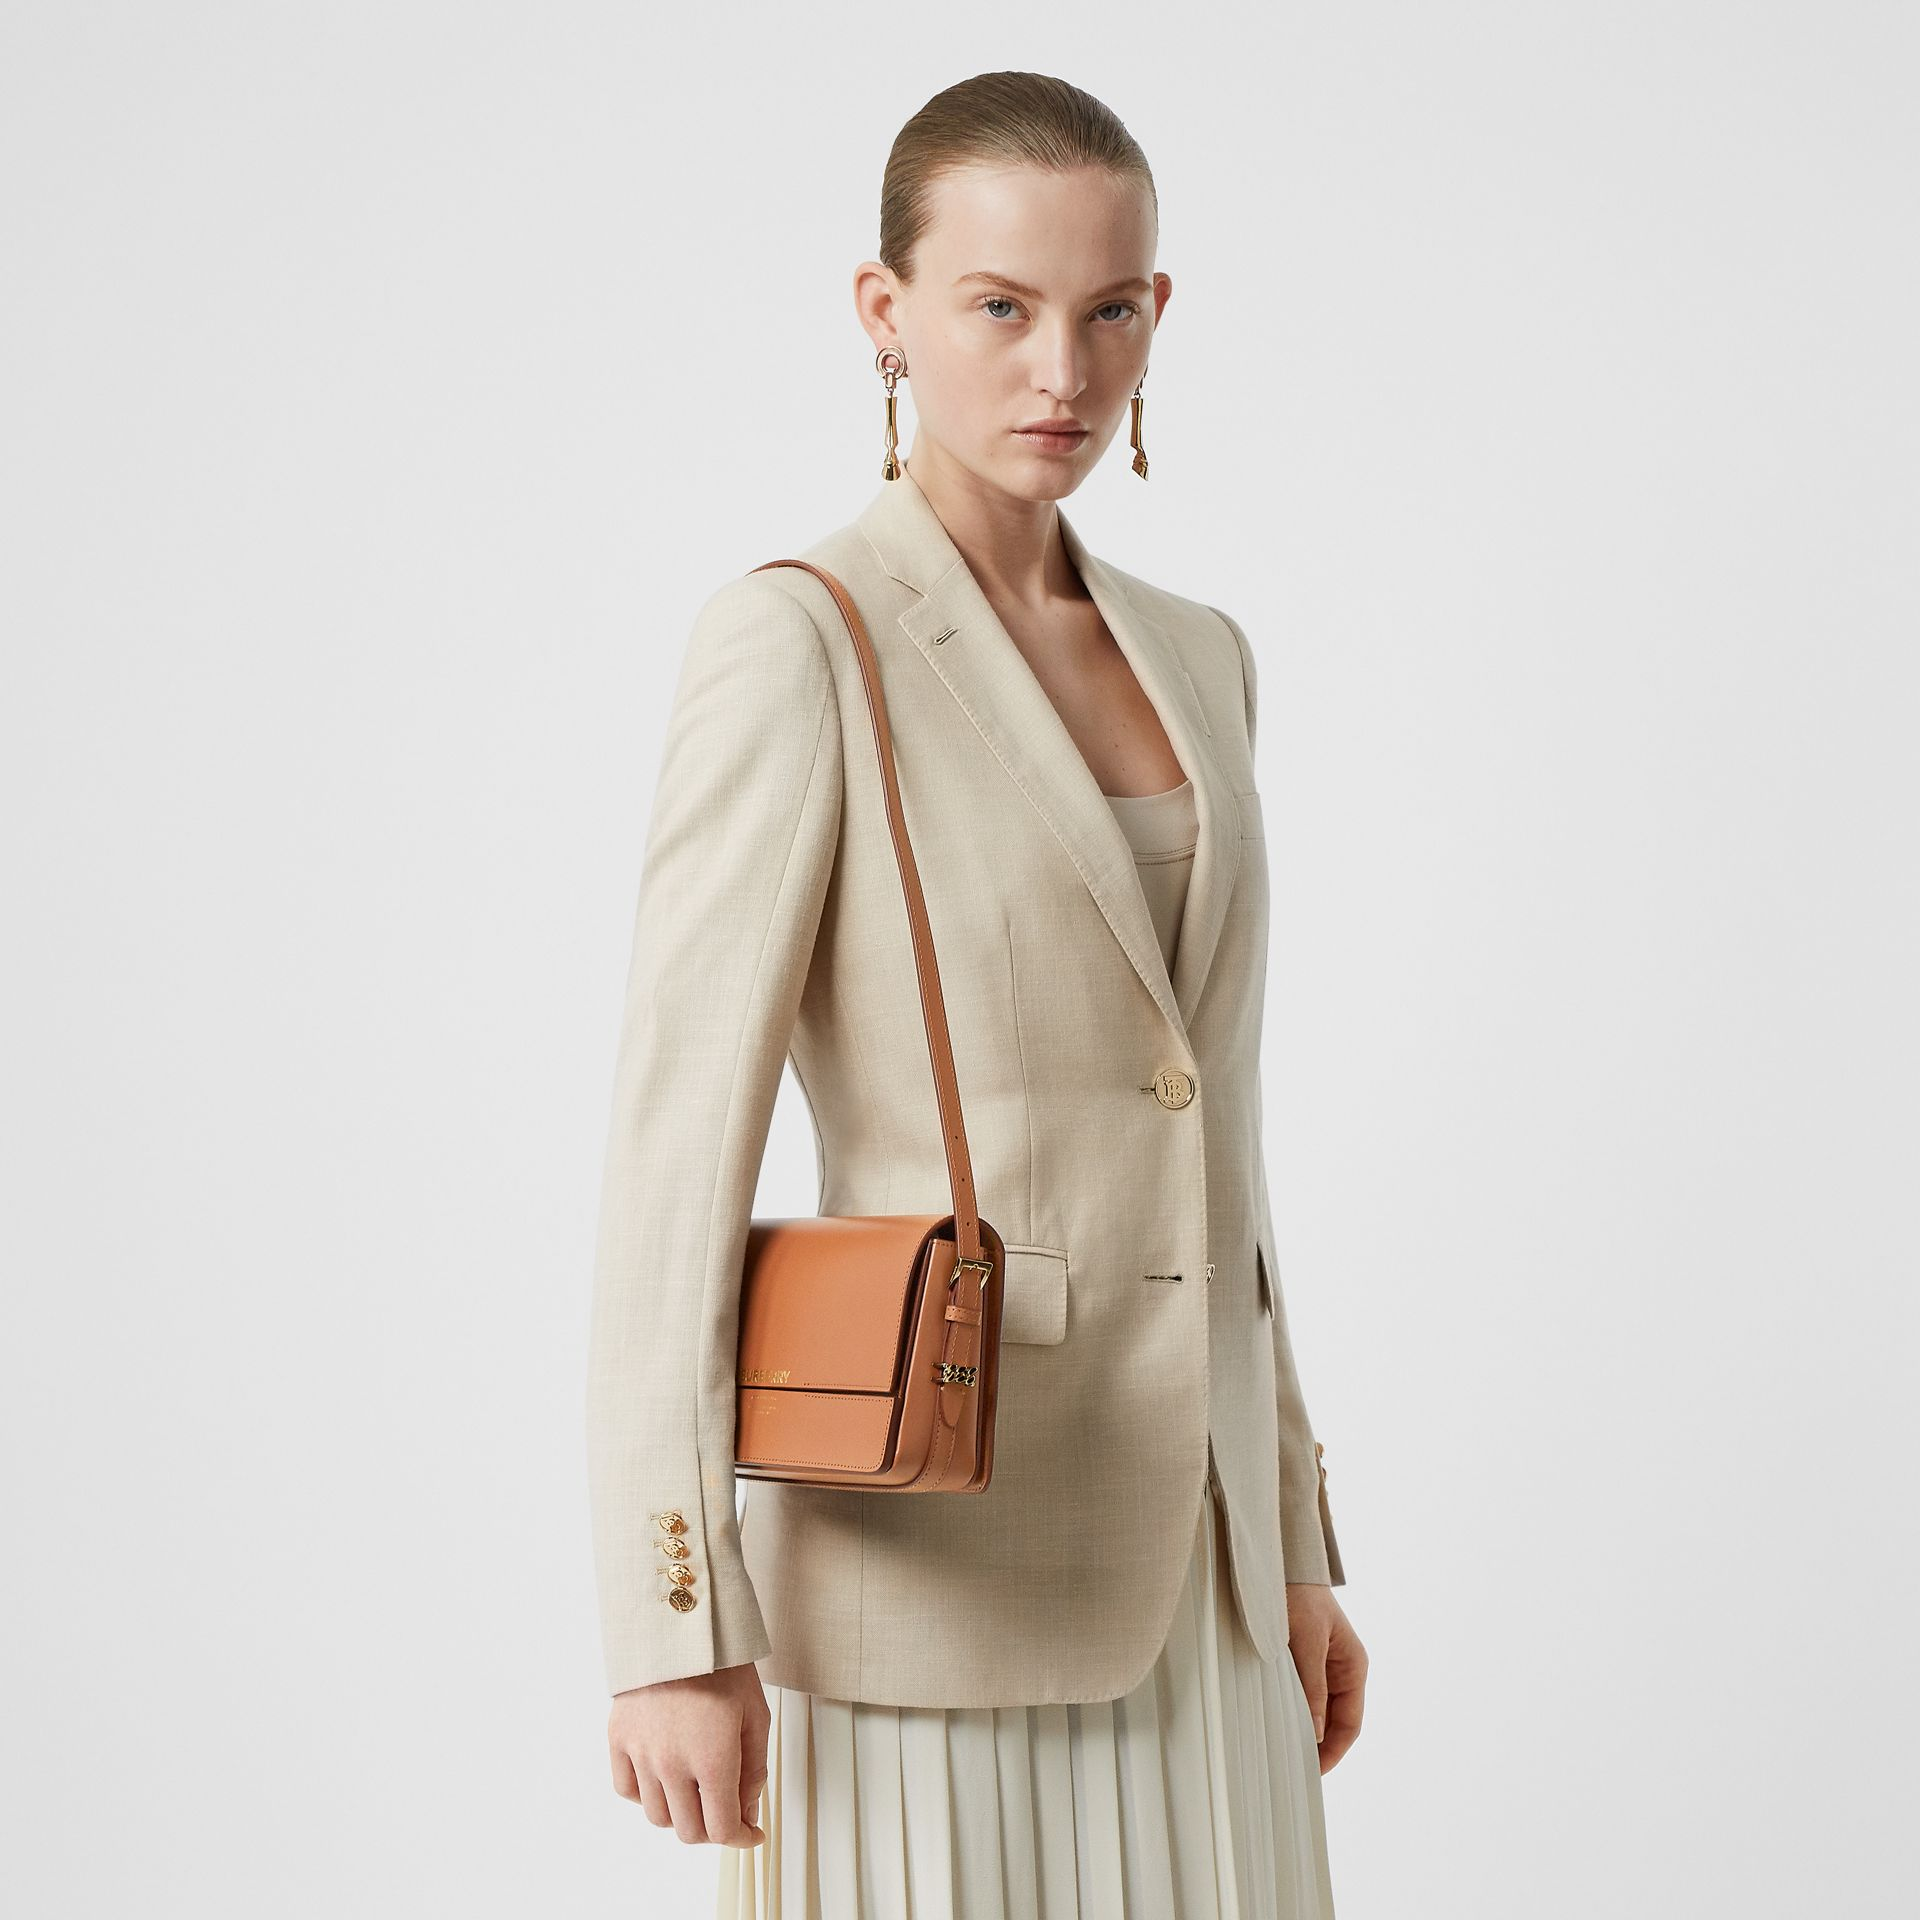 Mini sac Grace en cuir (Noix De Muscade) - Femme | Burberry Canada - photo de la galerie 2